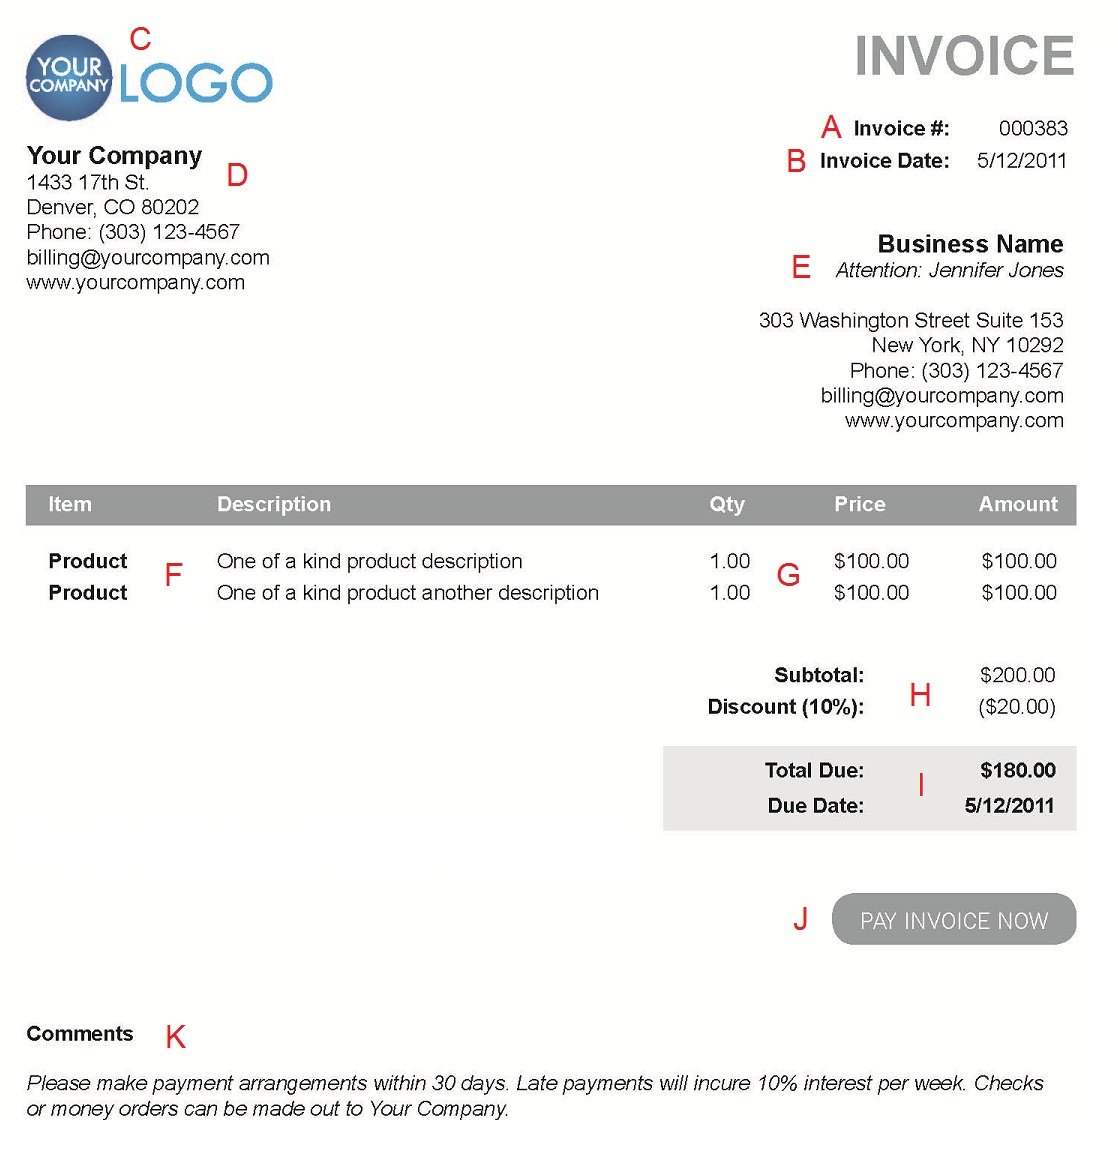 Aaaaeroincus  Fascinating The  Different Sections Of An Electronic Payment Invoice With Inspiring A  With Lovely How To Design Invoice Also Print Free Invoices In Addition Invoice File And Invoice Receipt Sample As Well As Prepare Invoice Online Additionally Definition Proforma Invoice From Paysimplecom With Aaaaeroincus  Inspiring The  Different Sections Of An Electronic Payment Invoice With Lovely A  And Fascinating How To Design Invoice Also Print Free Invoices In Addition Invoice File From Paysimplecom